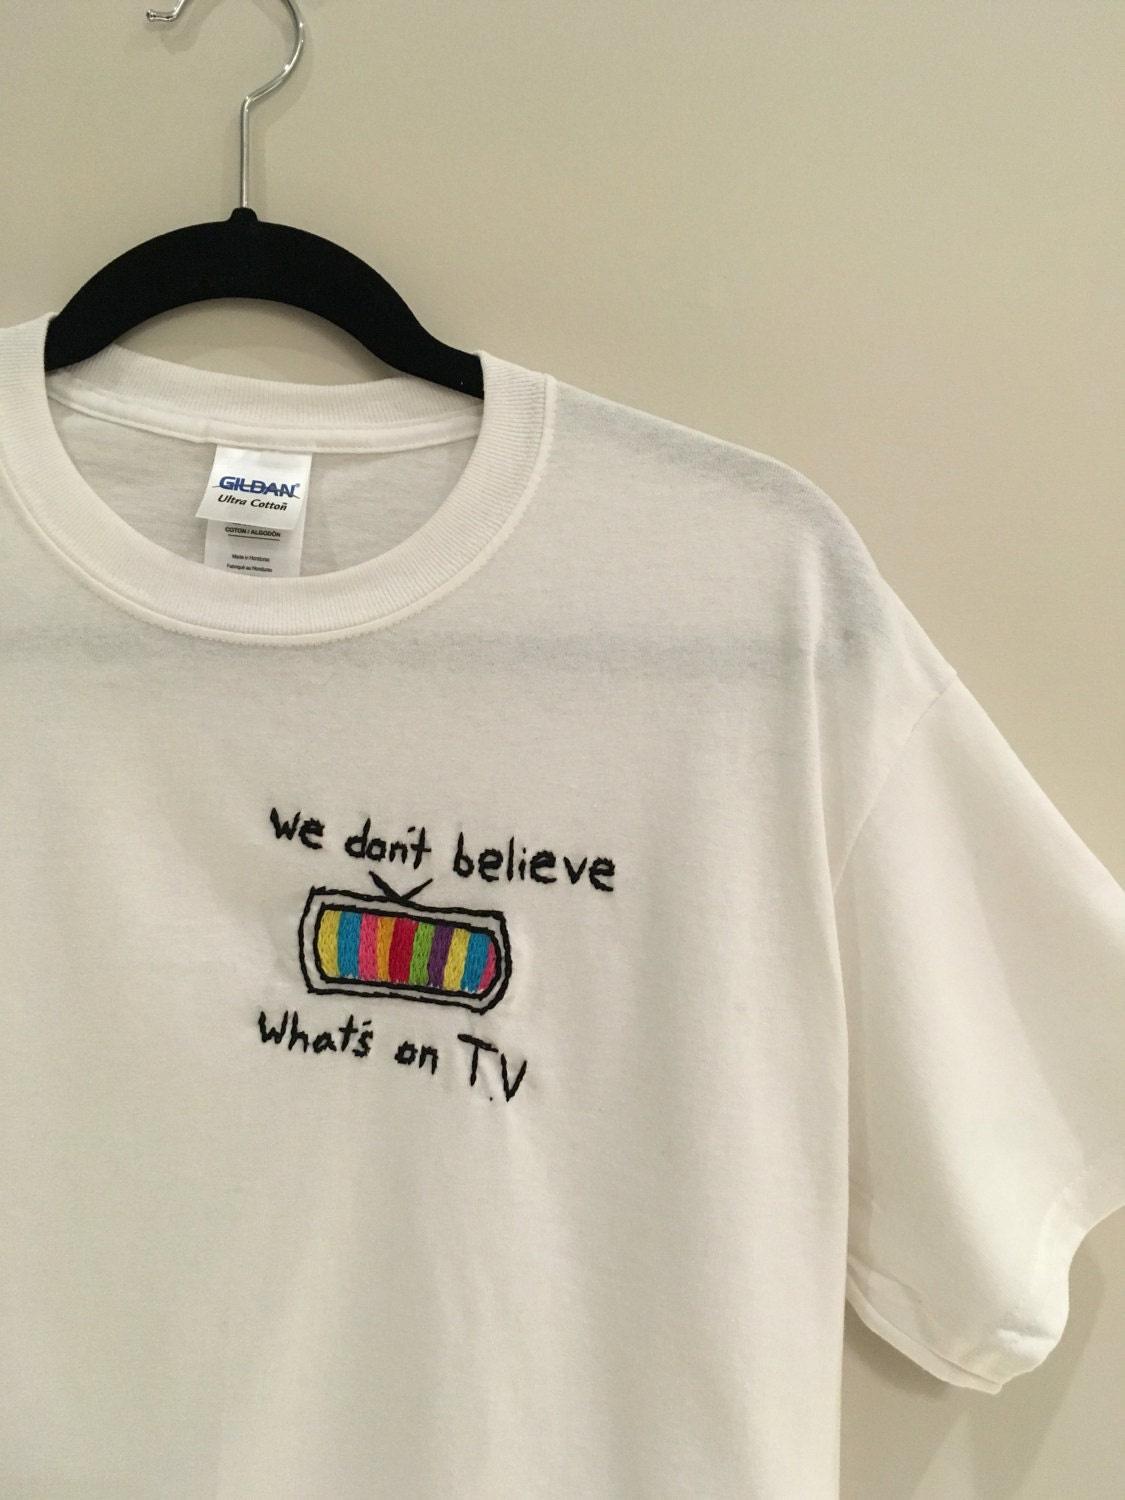 We don t believe whats s on v embroidered shirt